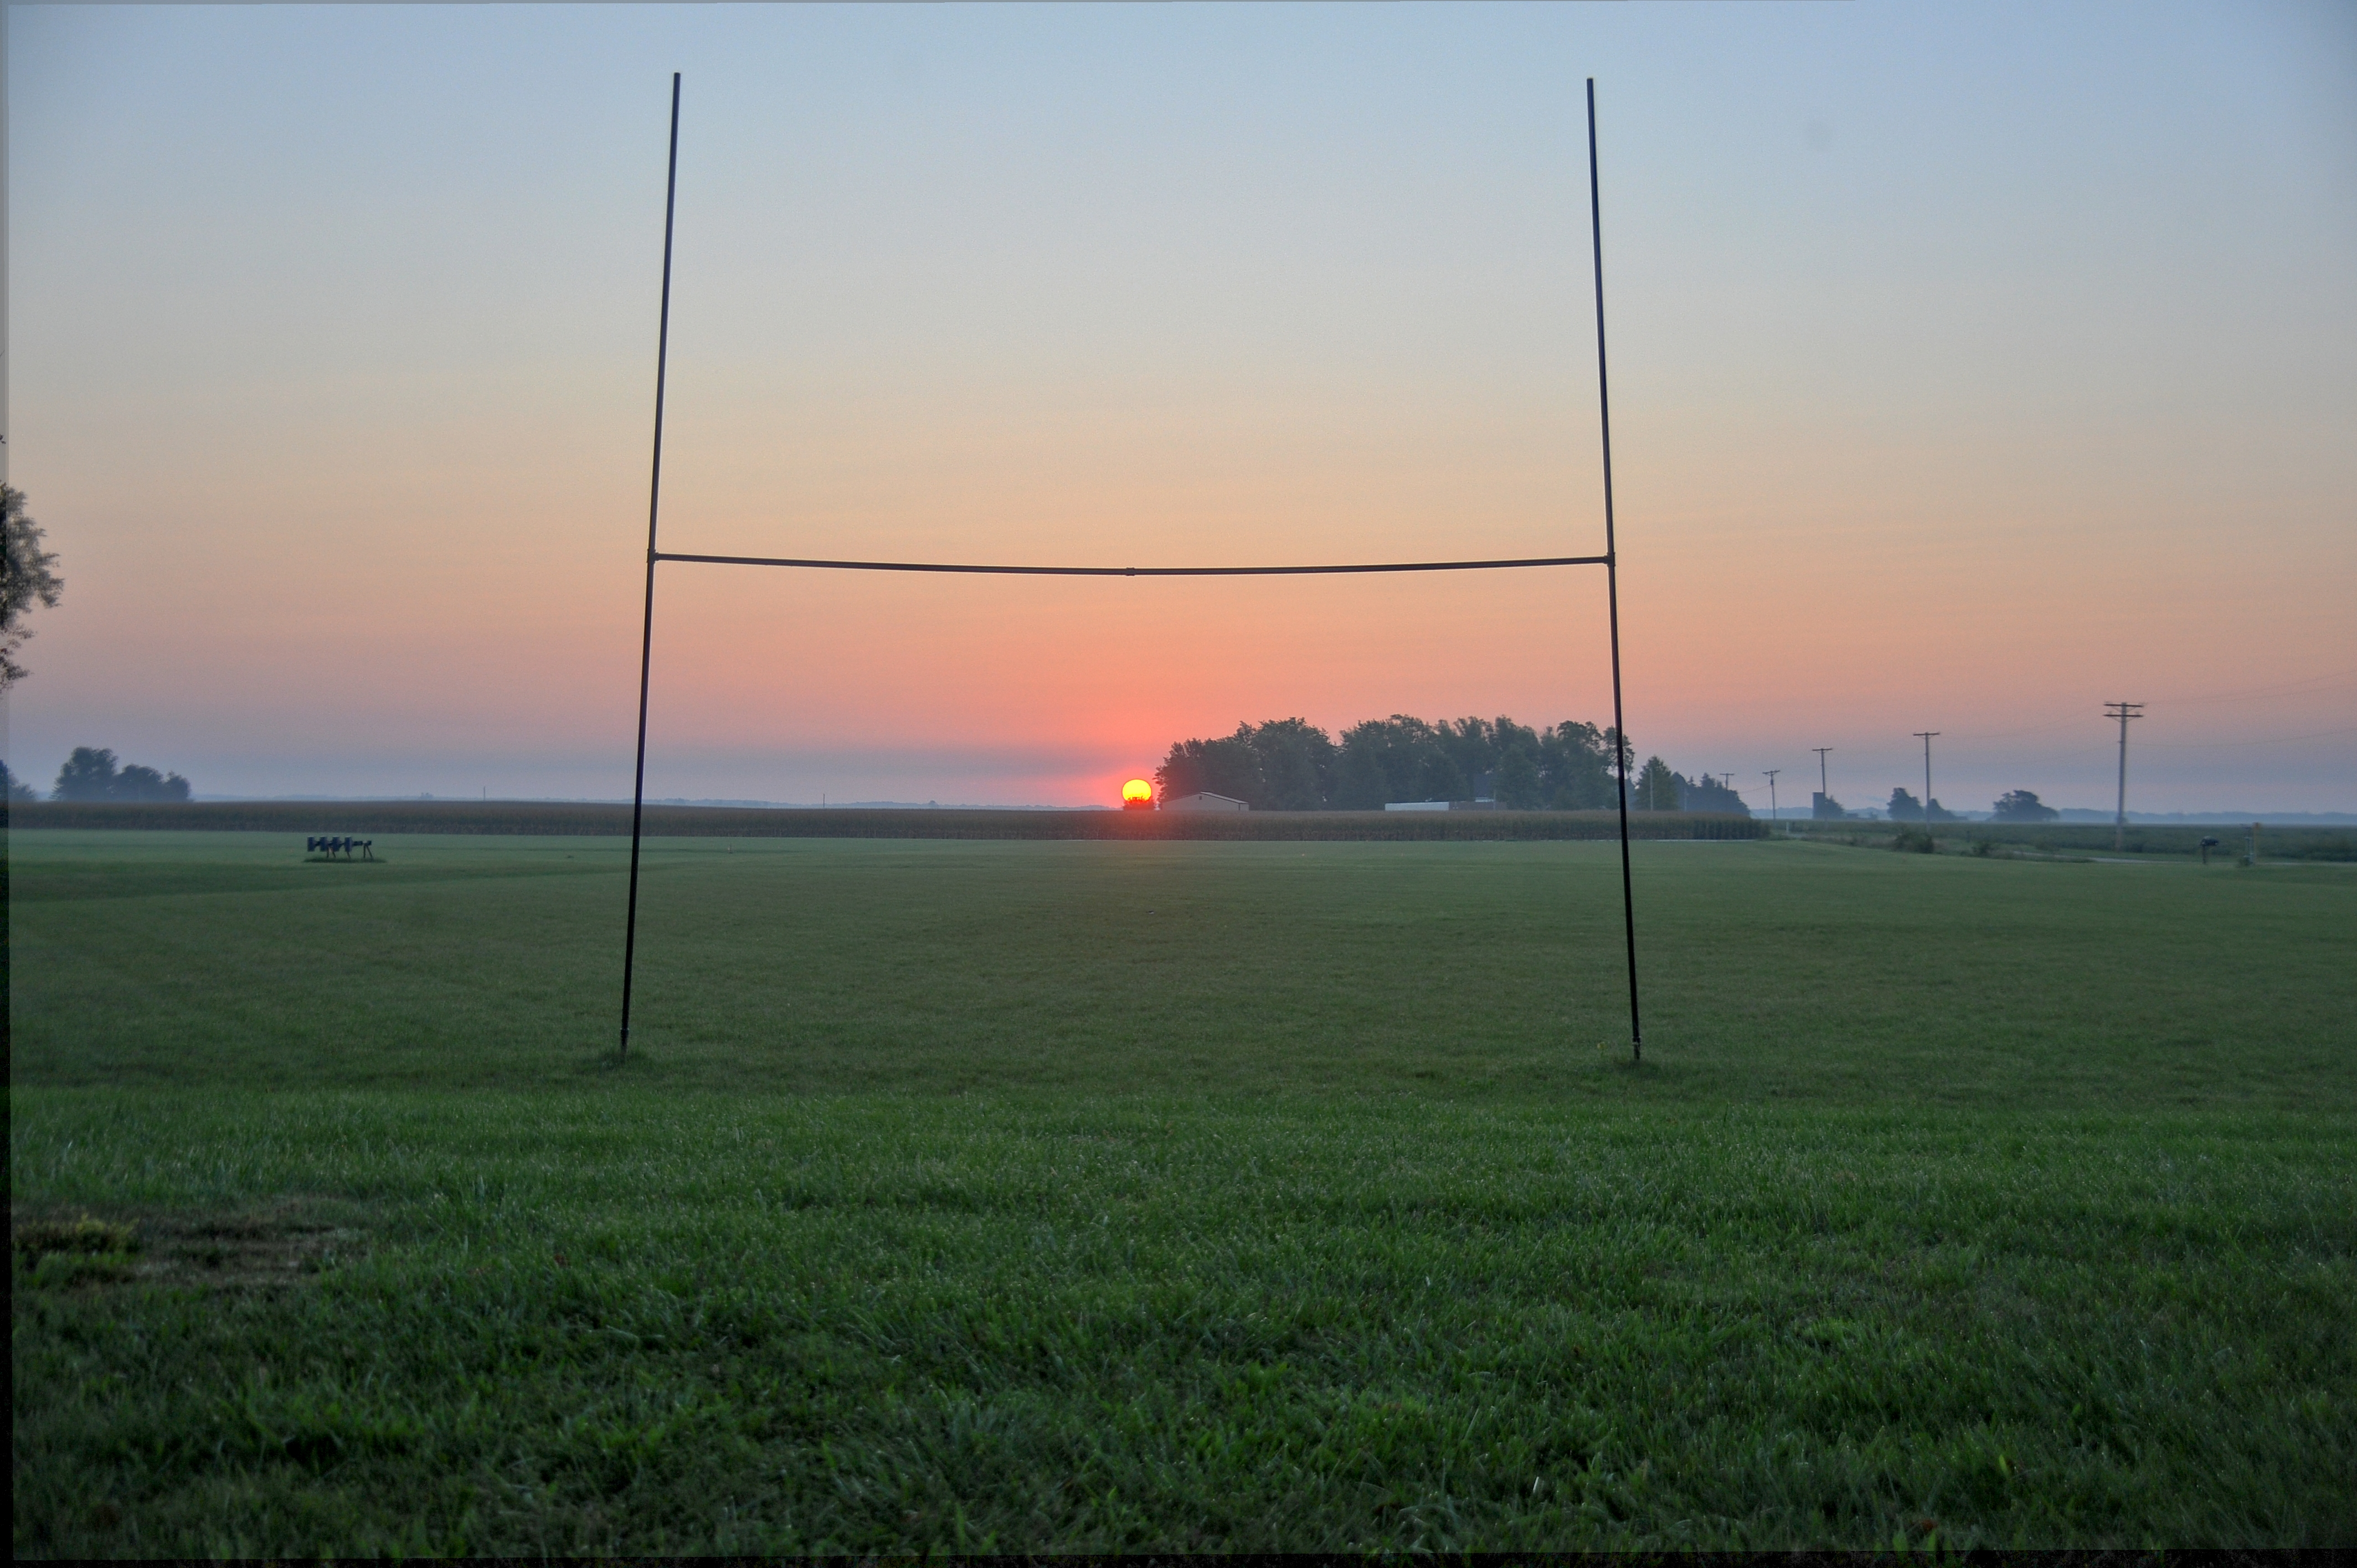 Rugby Practice Field